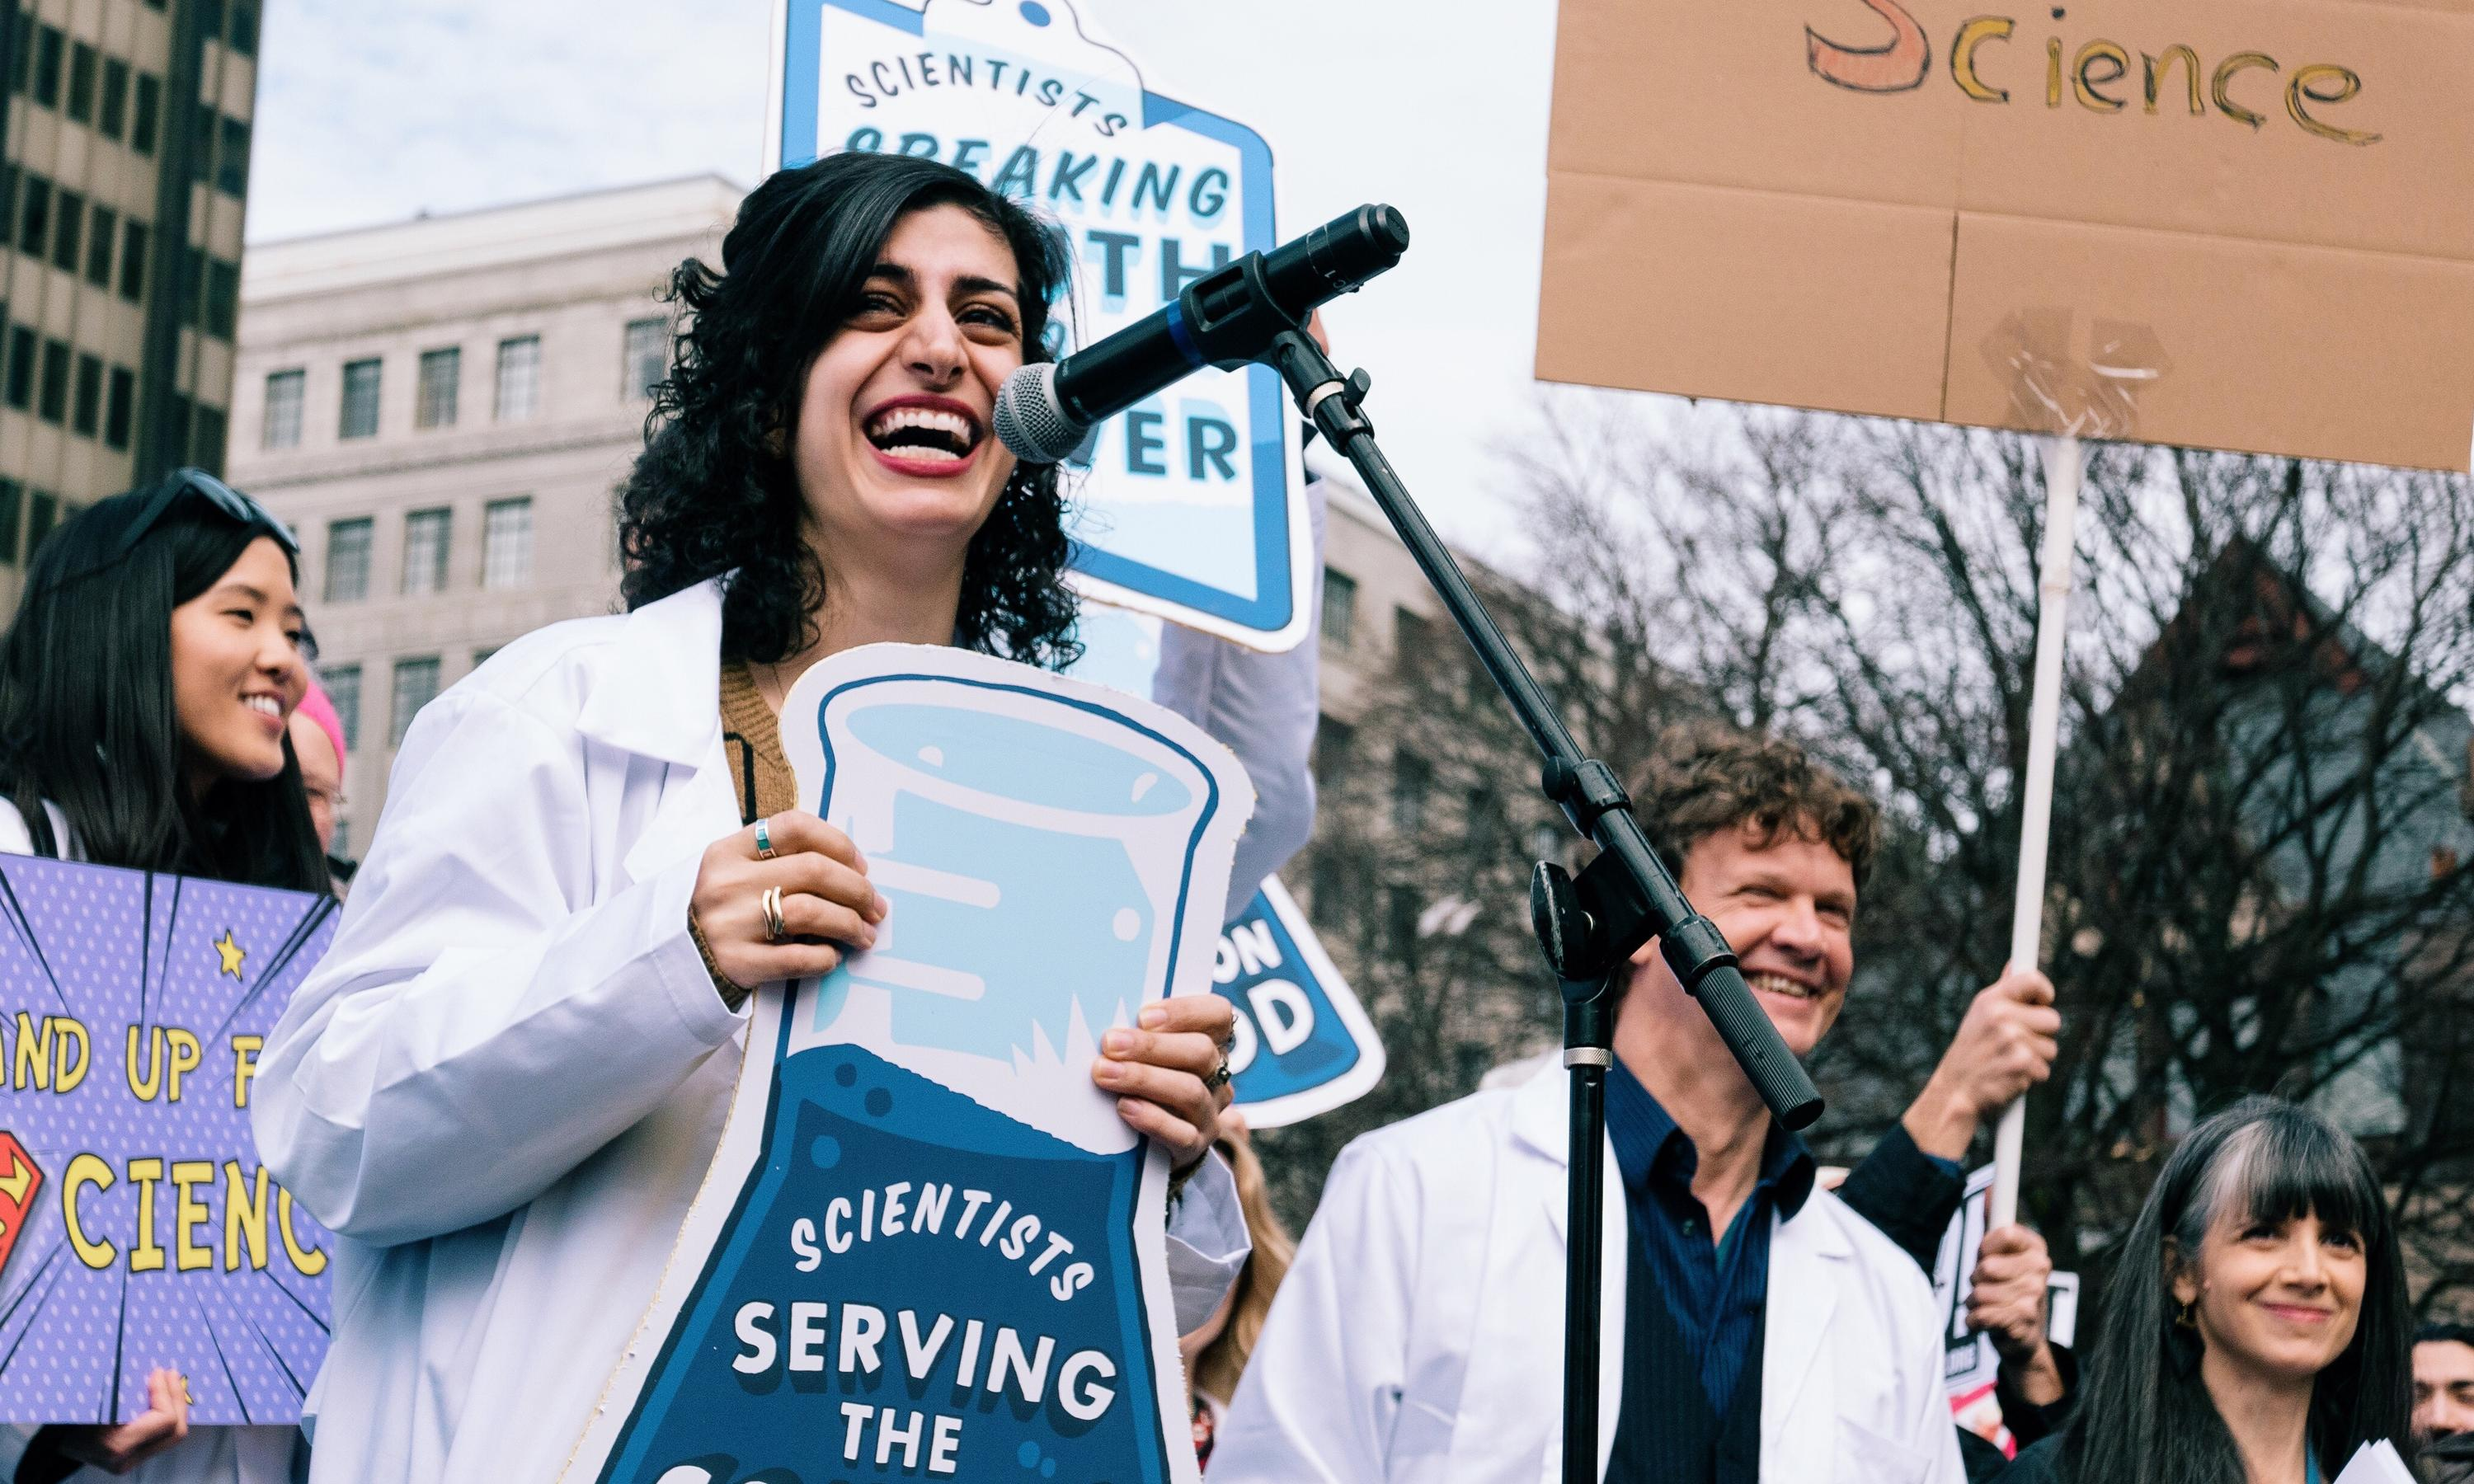 Maryam Zaringhalam speaks at a science march